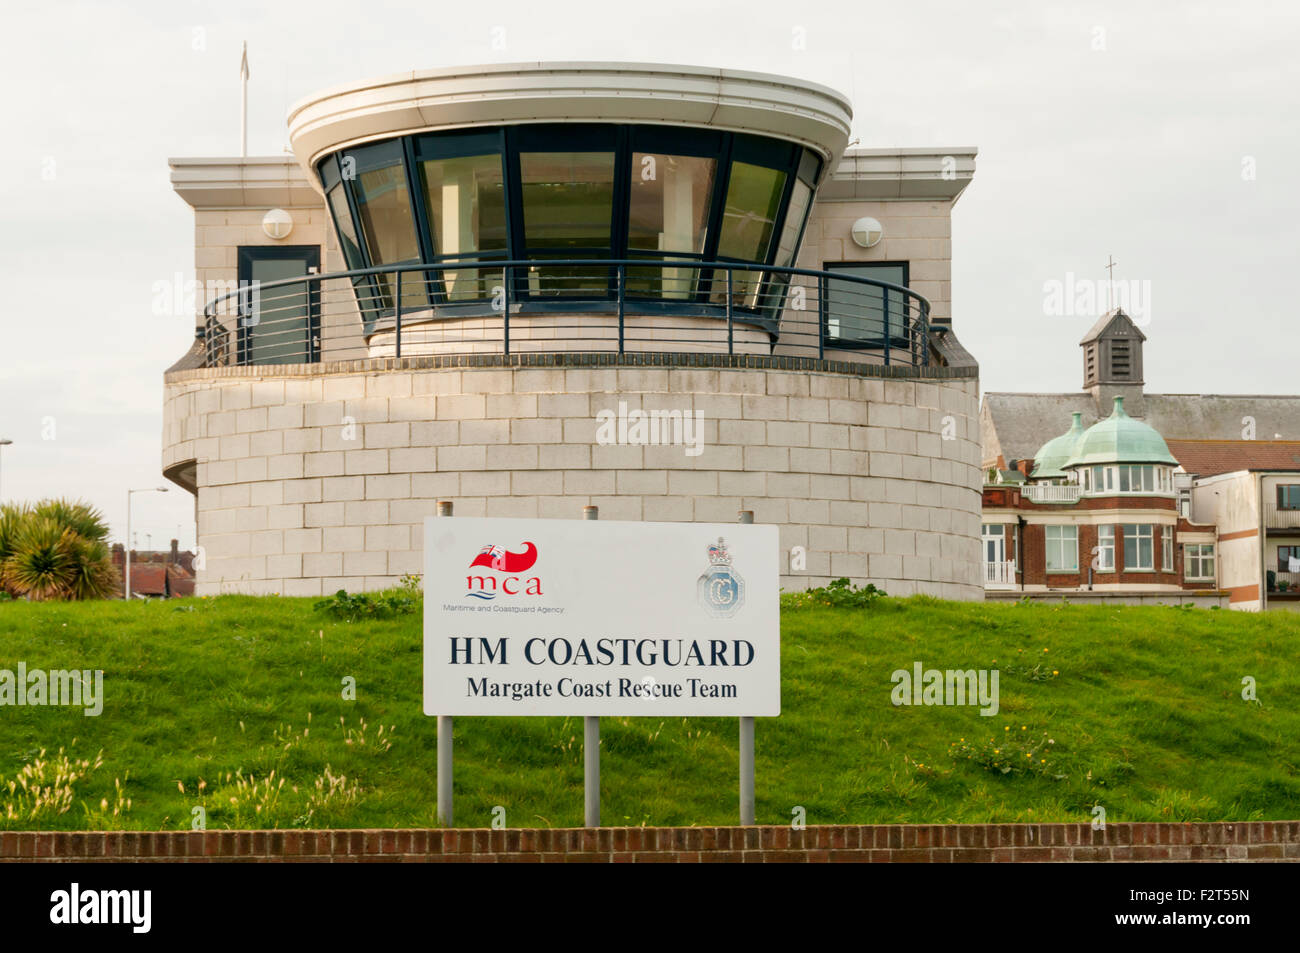 HM Coastguard Margate Coast Rescue Team base and observation platform. - Stock Image